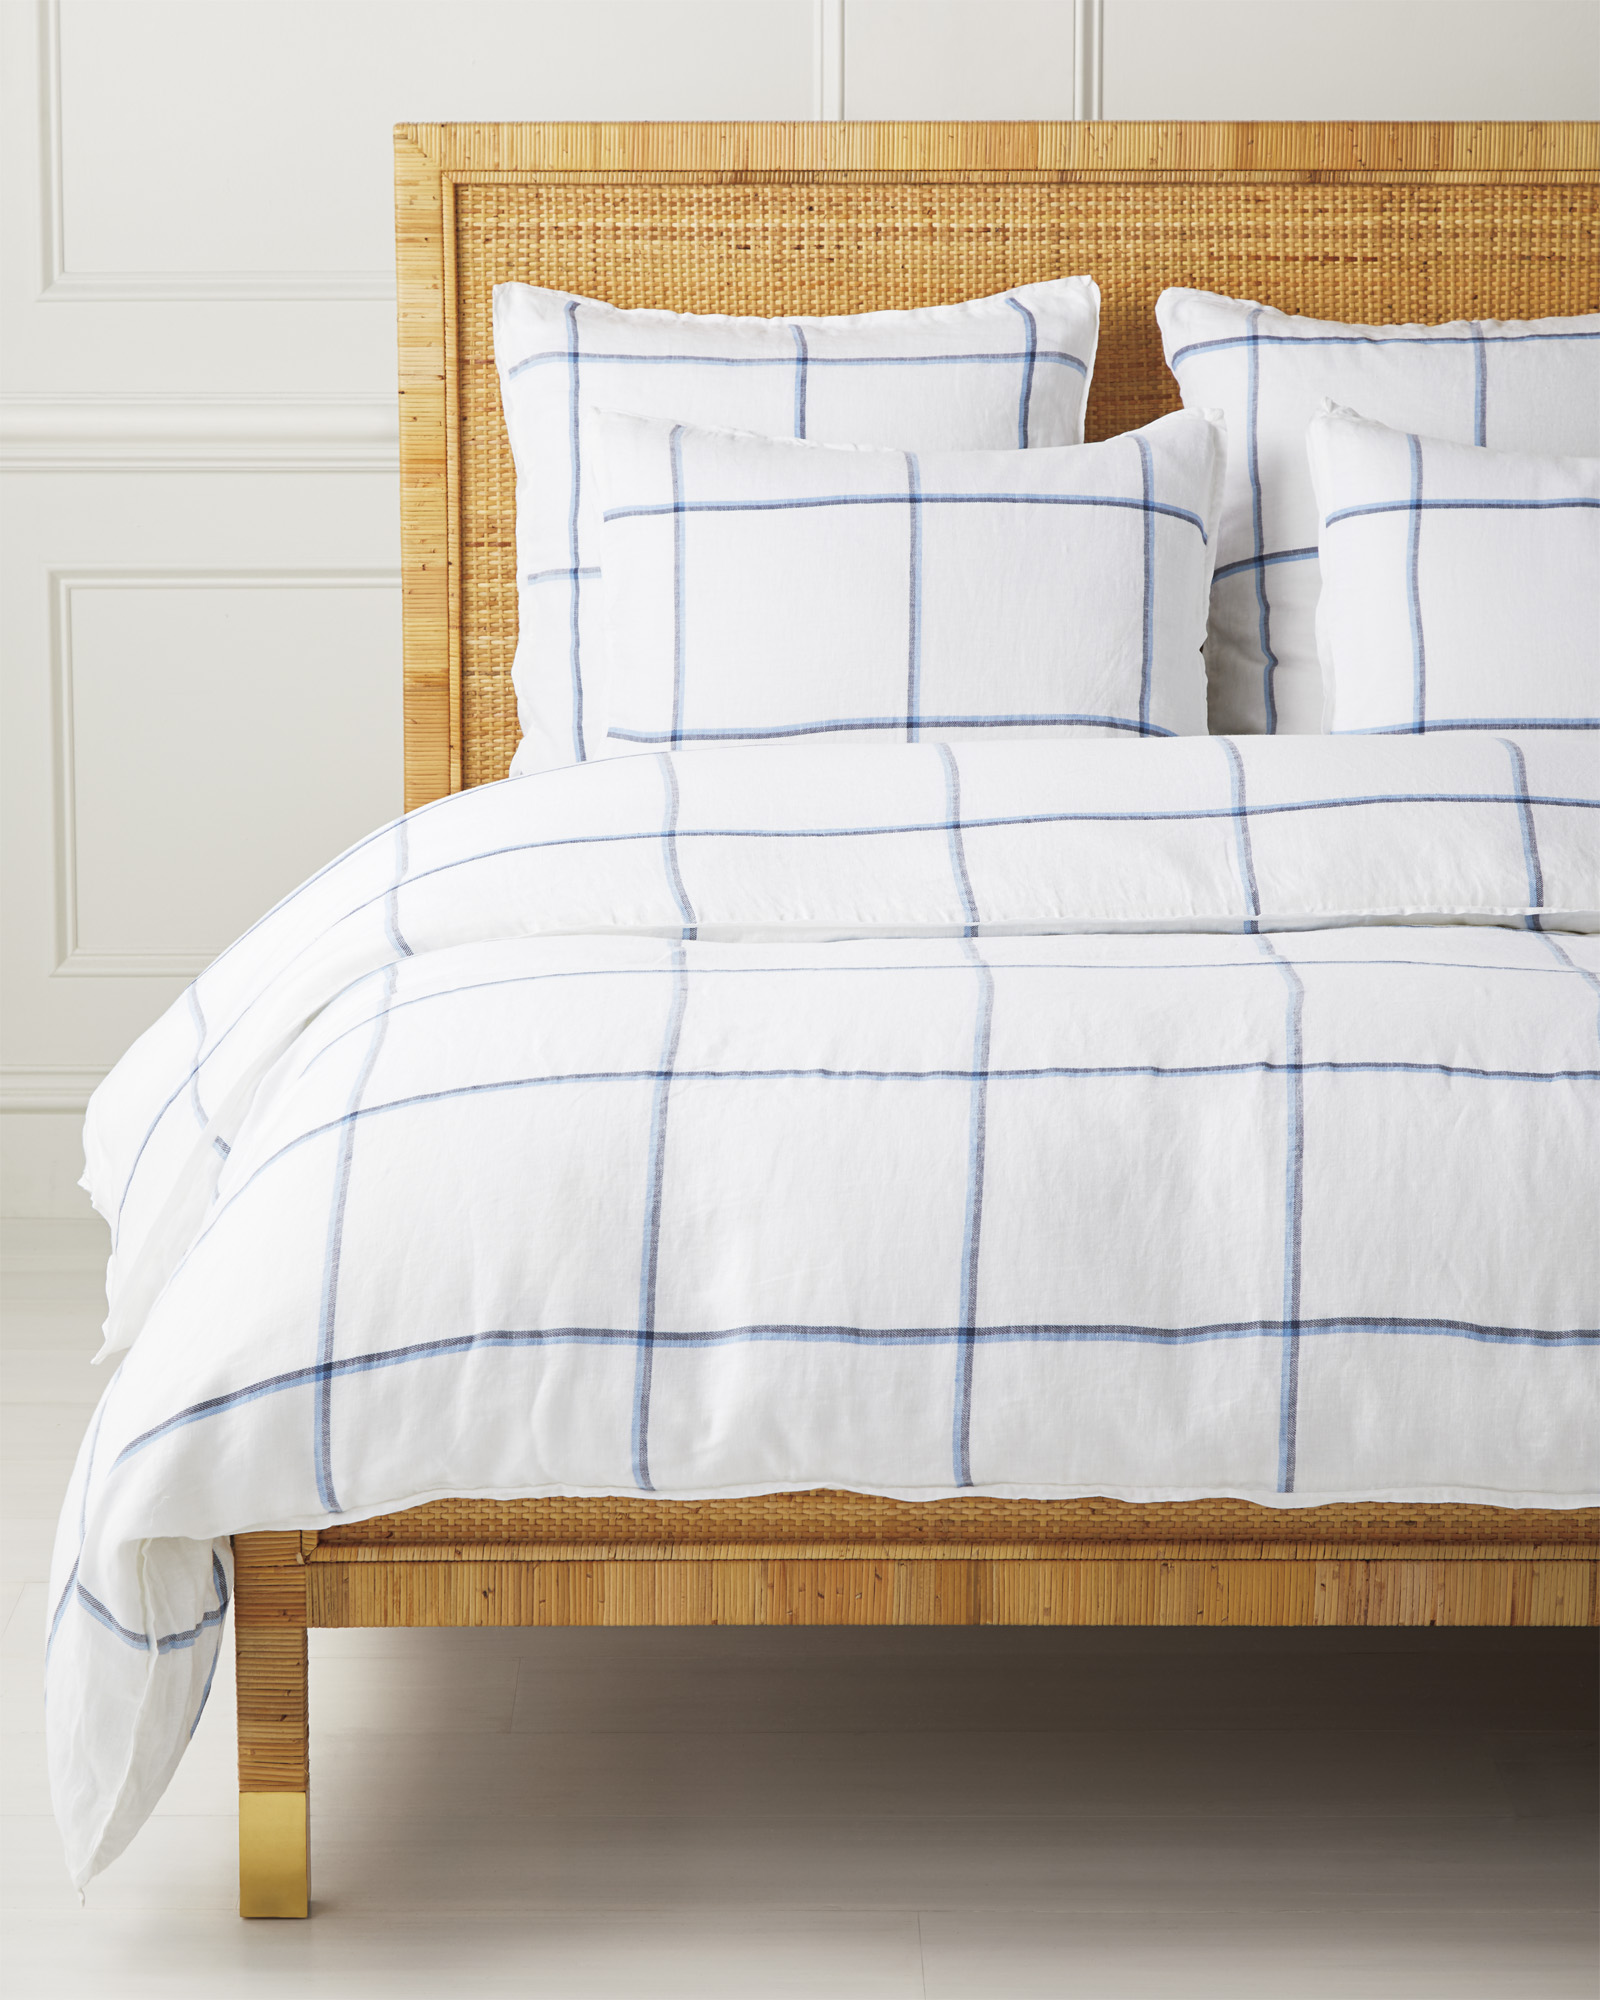 Hammonds Duvet Cover, Navy